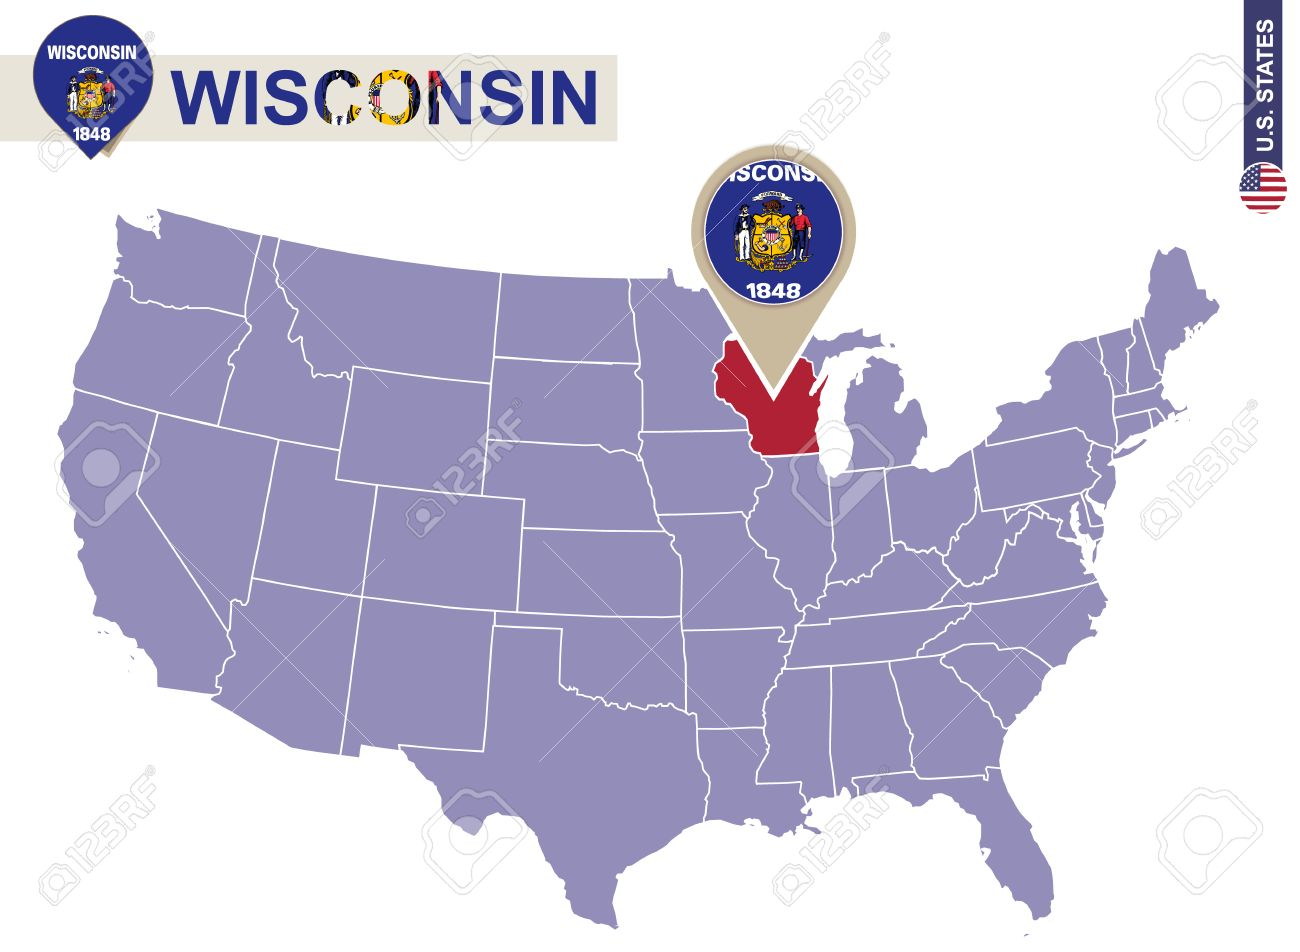 Wisconsin State On Usa Map Wisconsin Flag And Map Us States - Wisconsin-on-map-of-us